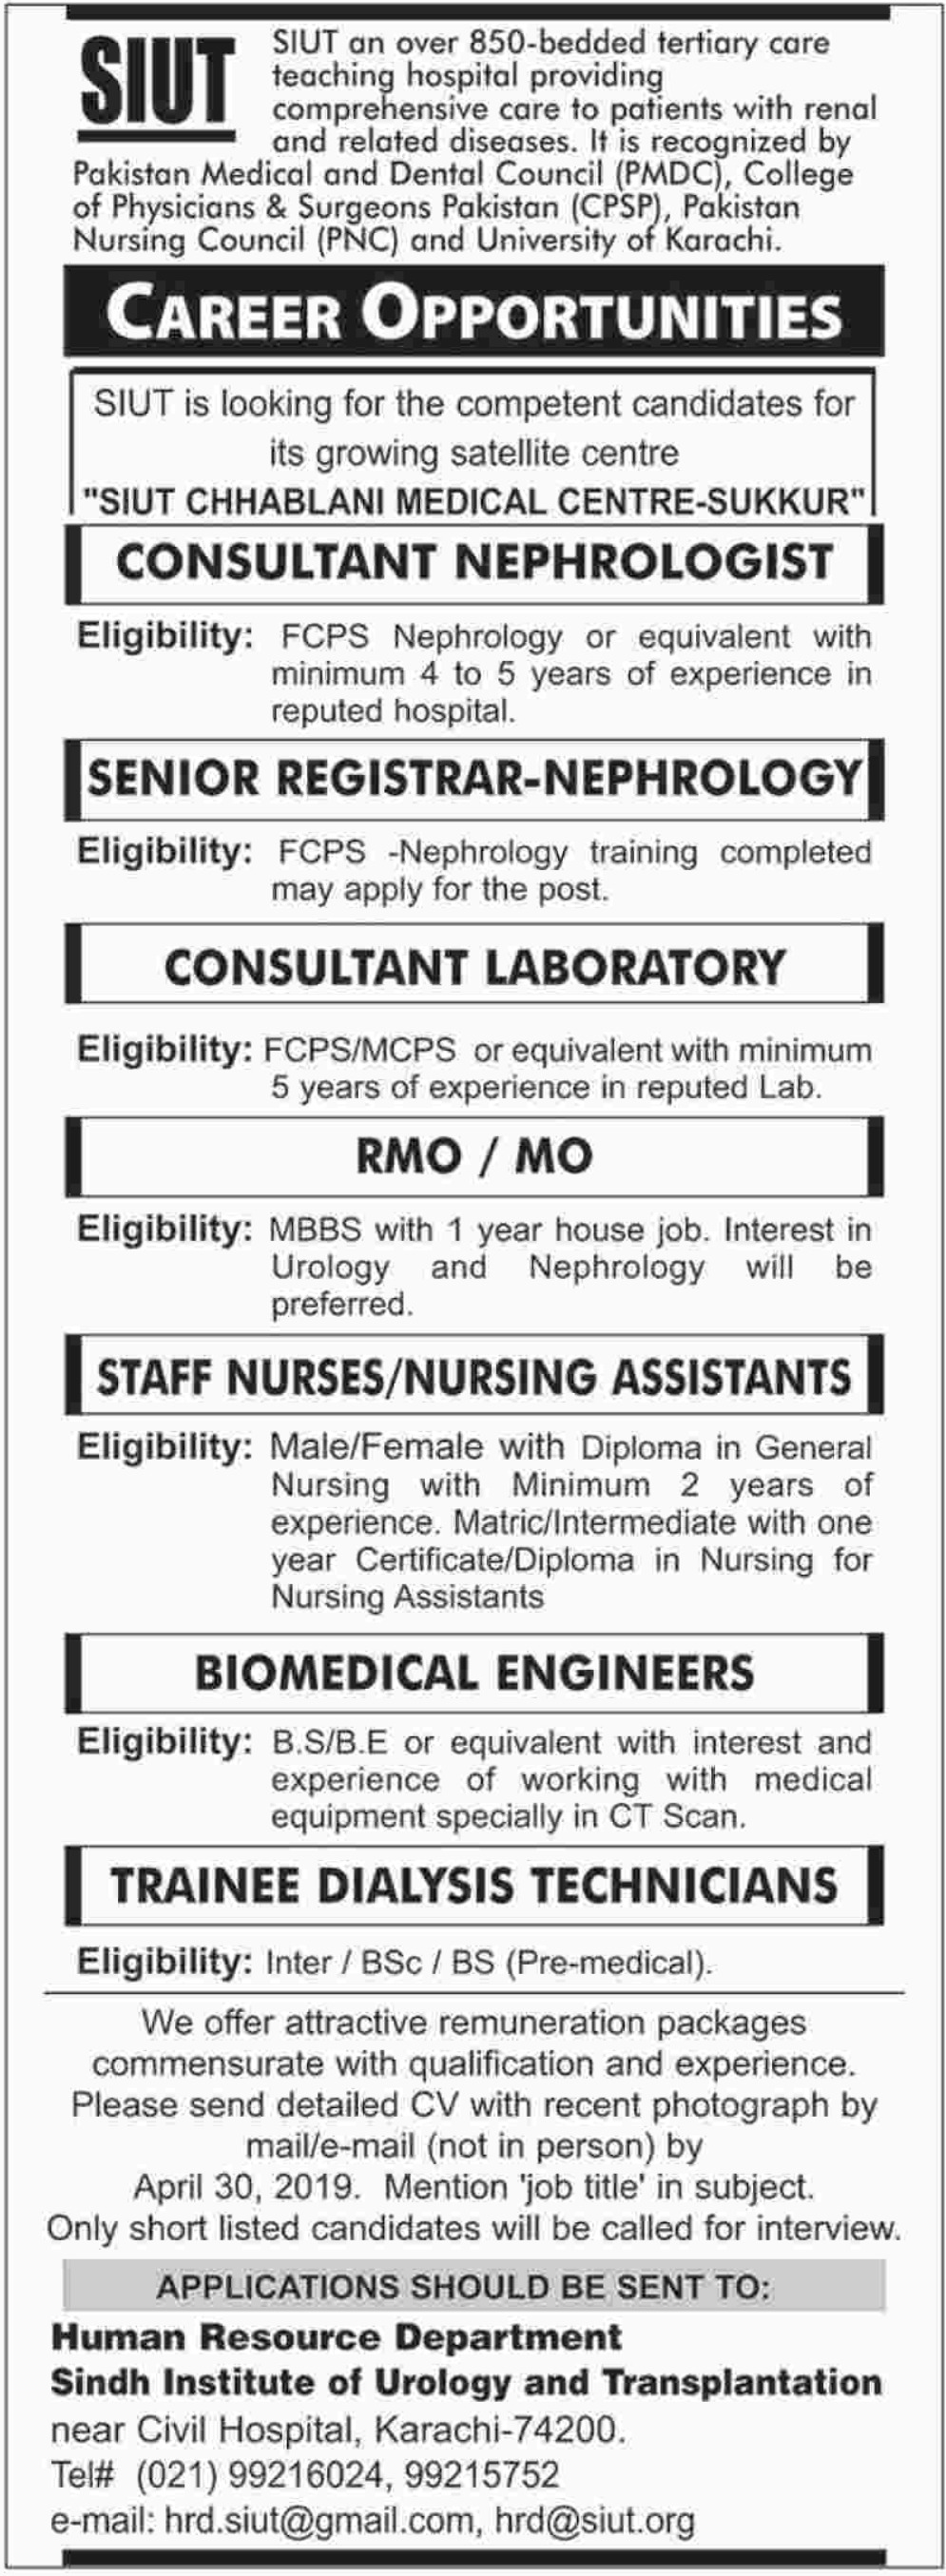 Sindh Institute of Urology & Transplantation SIUT Jobs 2019 Sukkur Latest